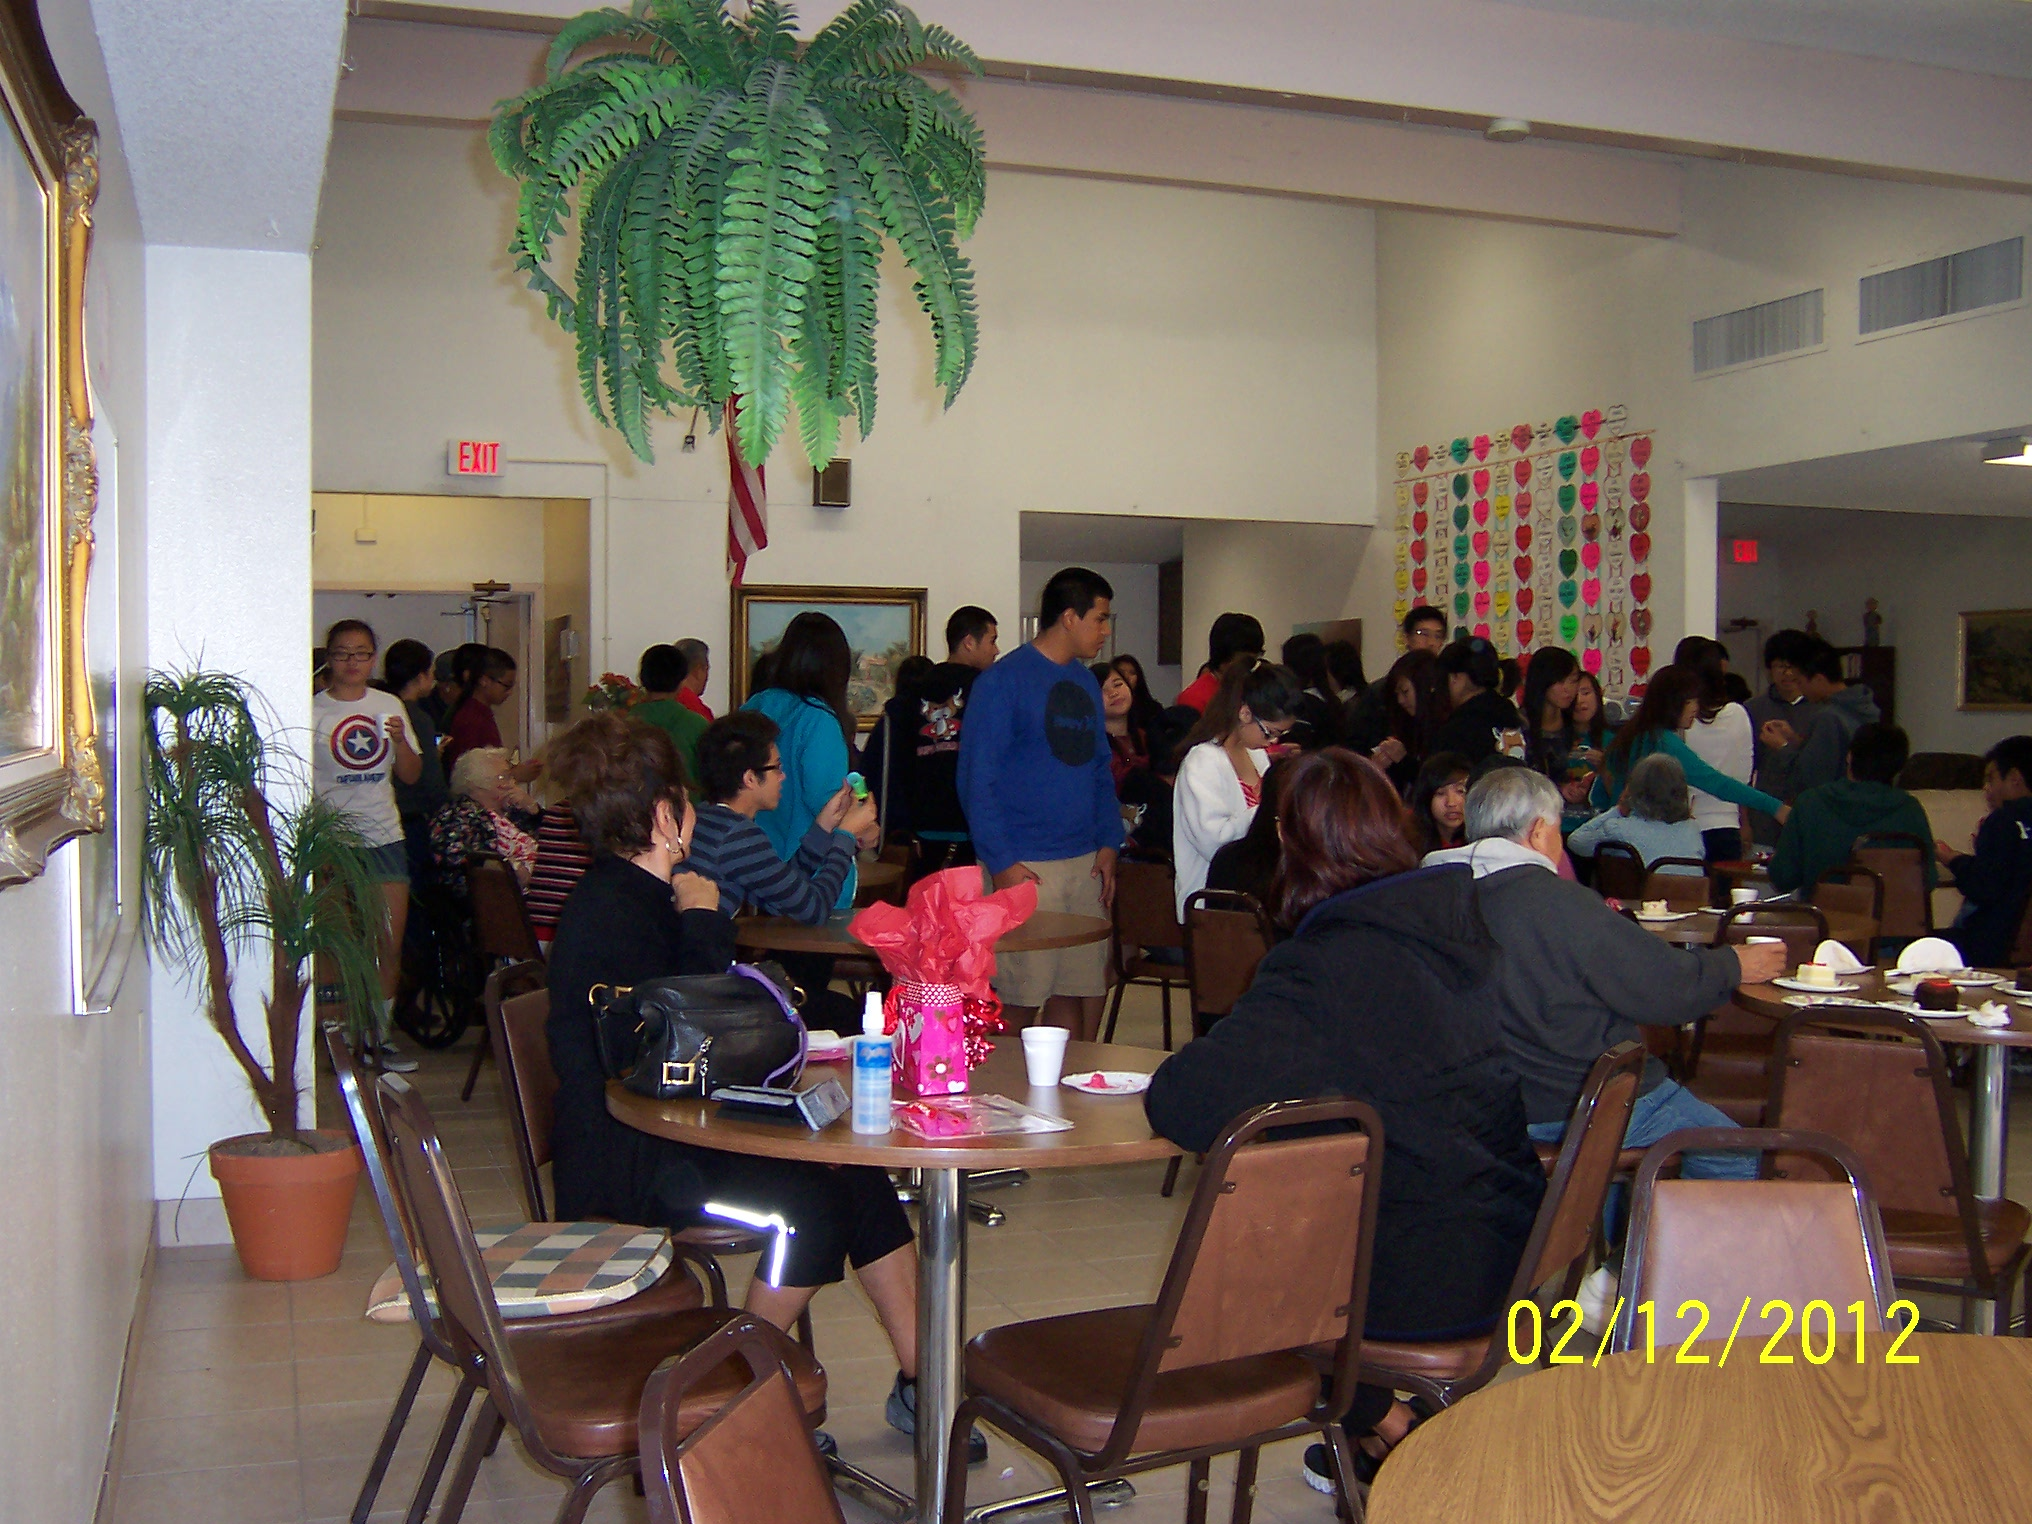 2012-02-12_WADY-Team-Party-for-Frail-Seniors_0050.JPG